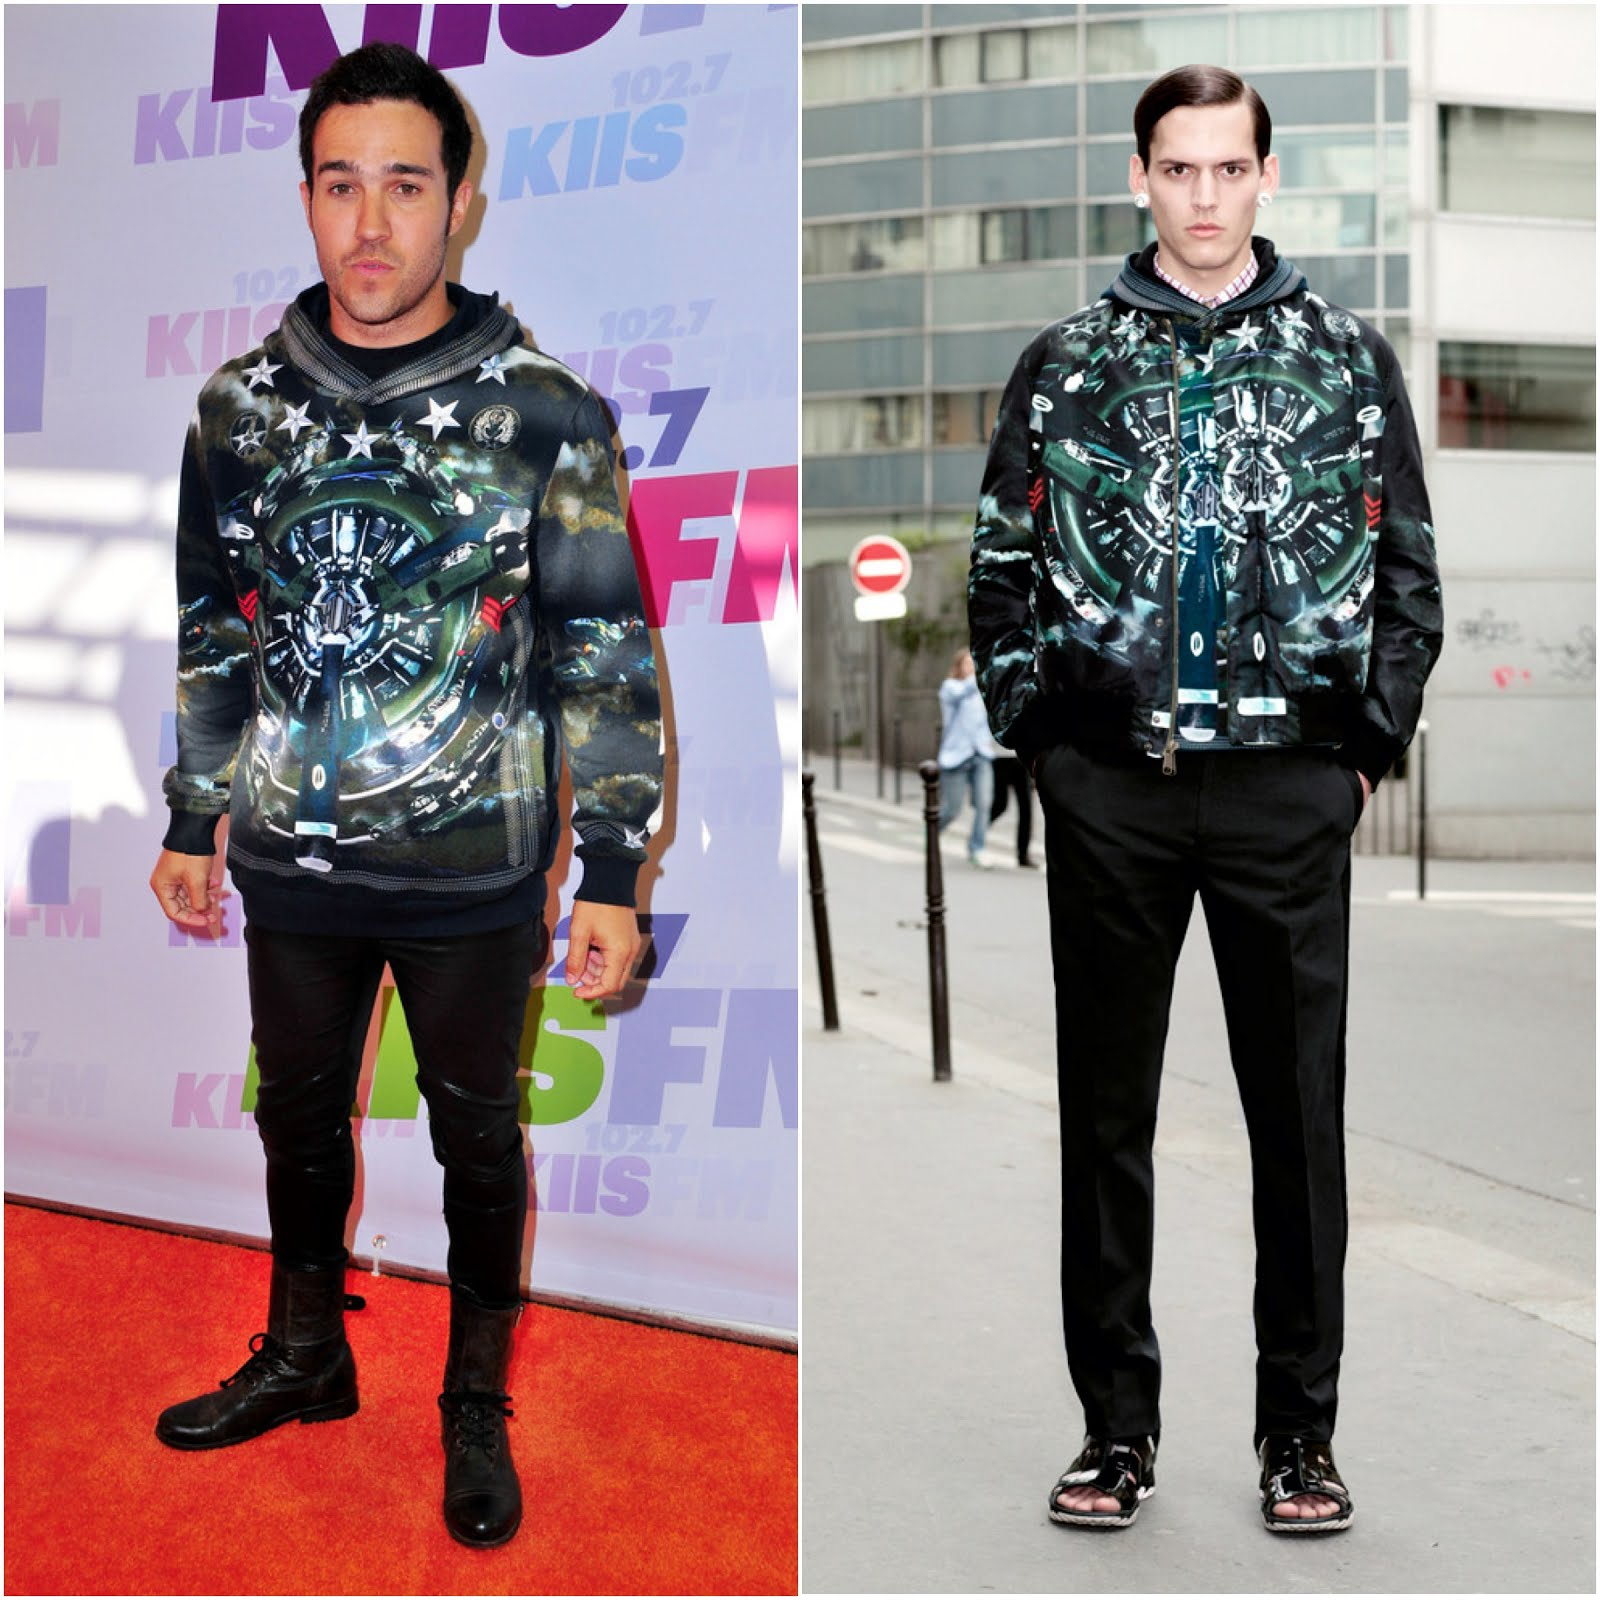 00O00 Menswear Blog: Pete Wentz and DJ Afrojack in Givenchy Spitfire print - 102.7 KIIS FM's Wango Tango May 2013